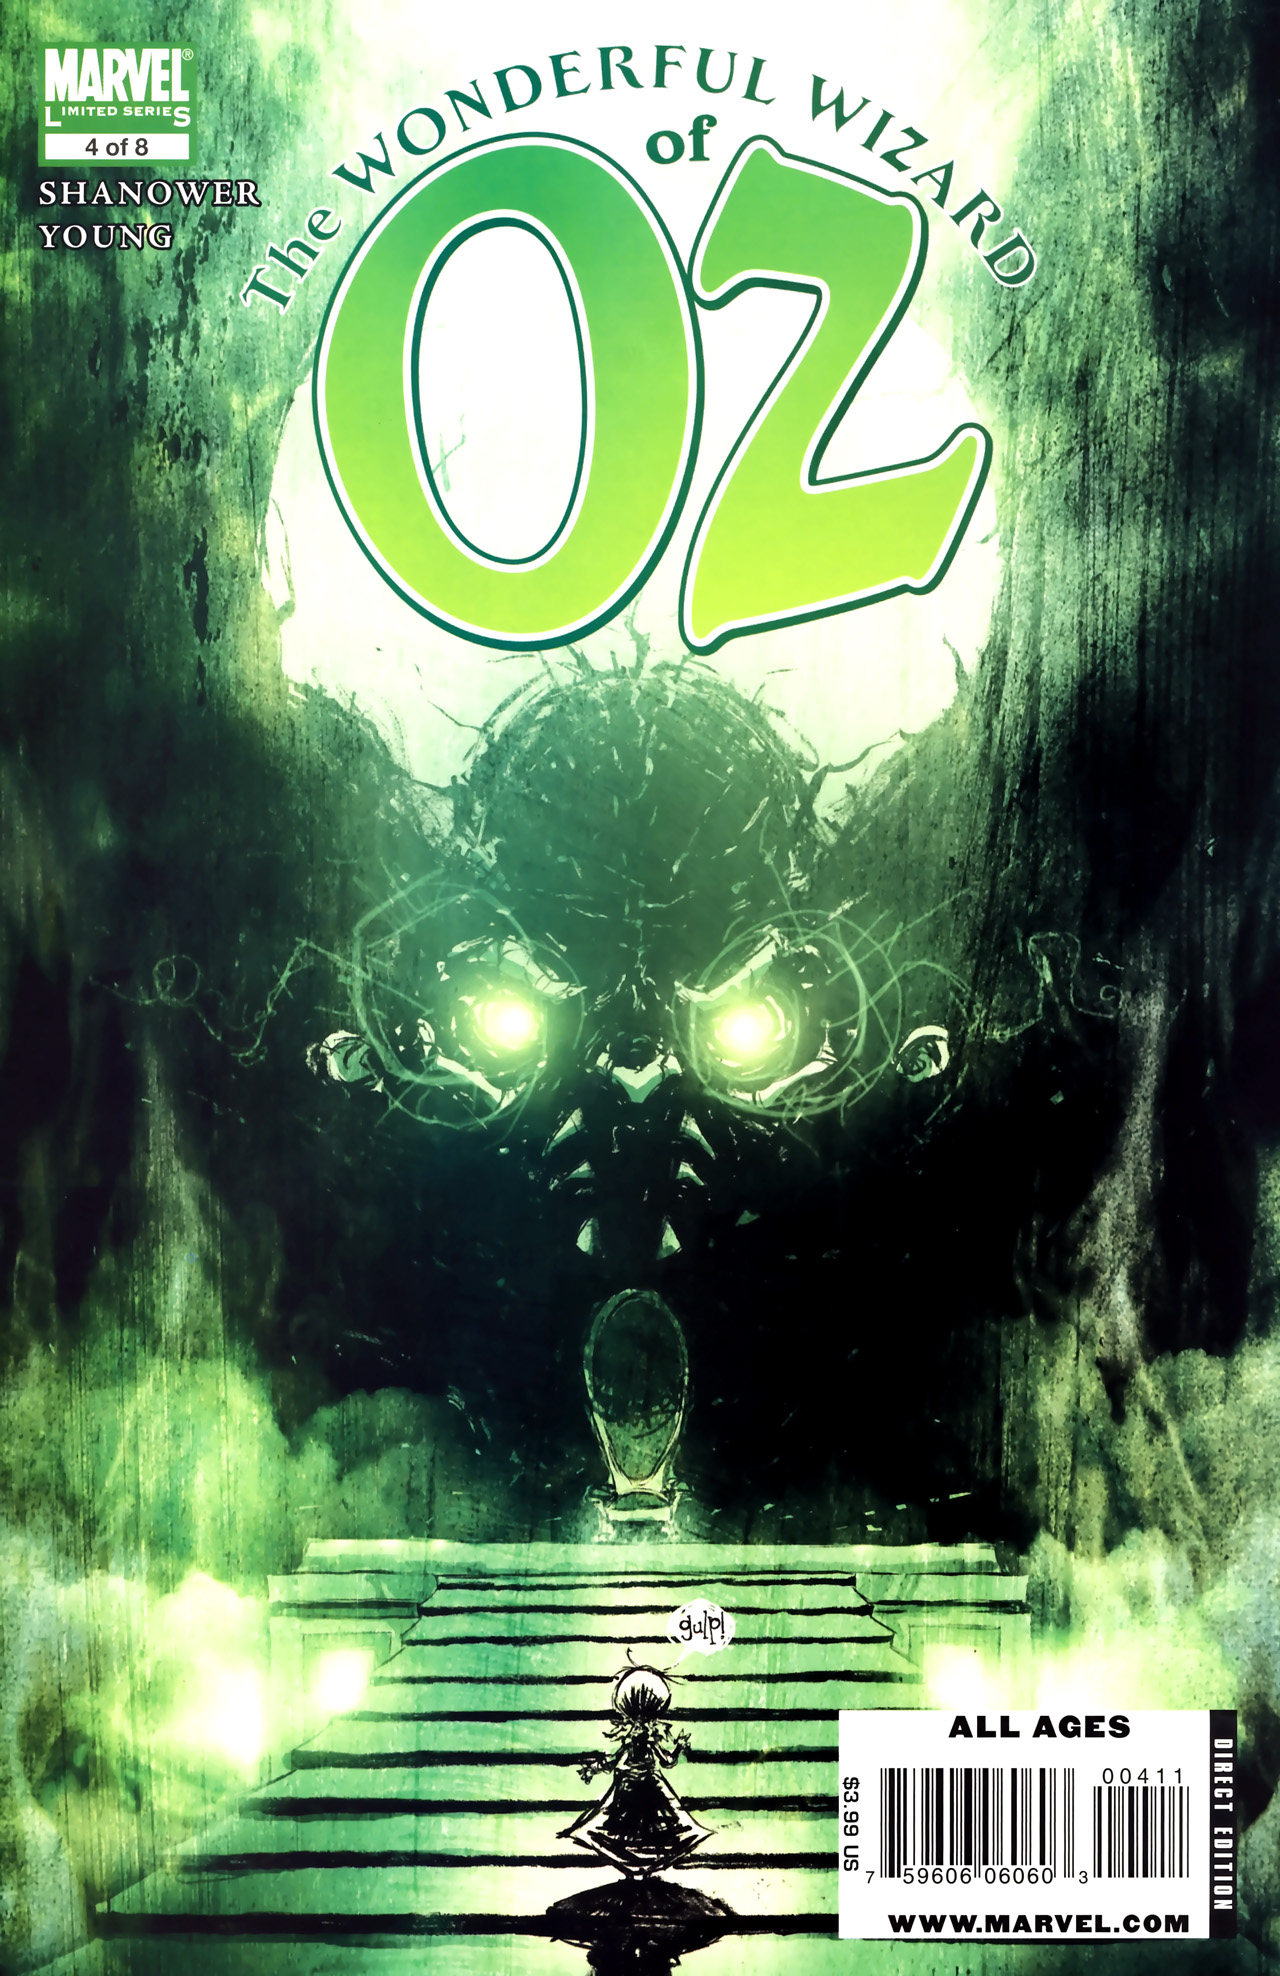 Read online The Wonderful Wizard of Oz comic -  Issue #4 - 1